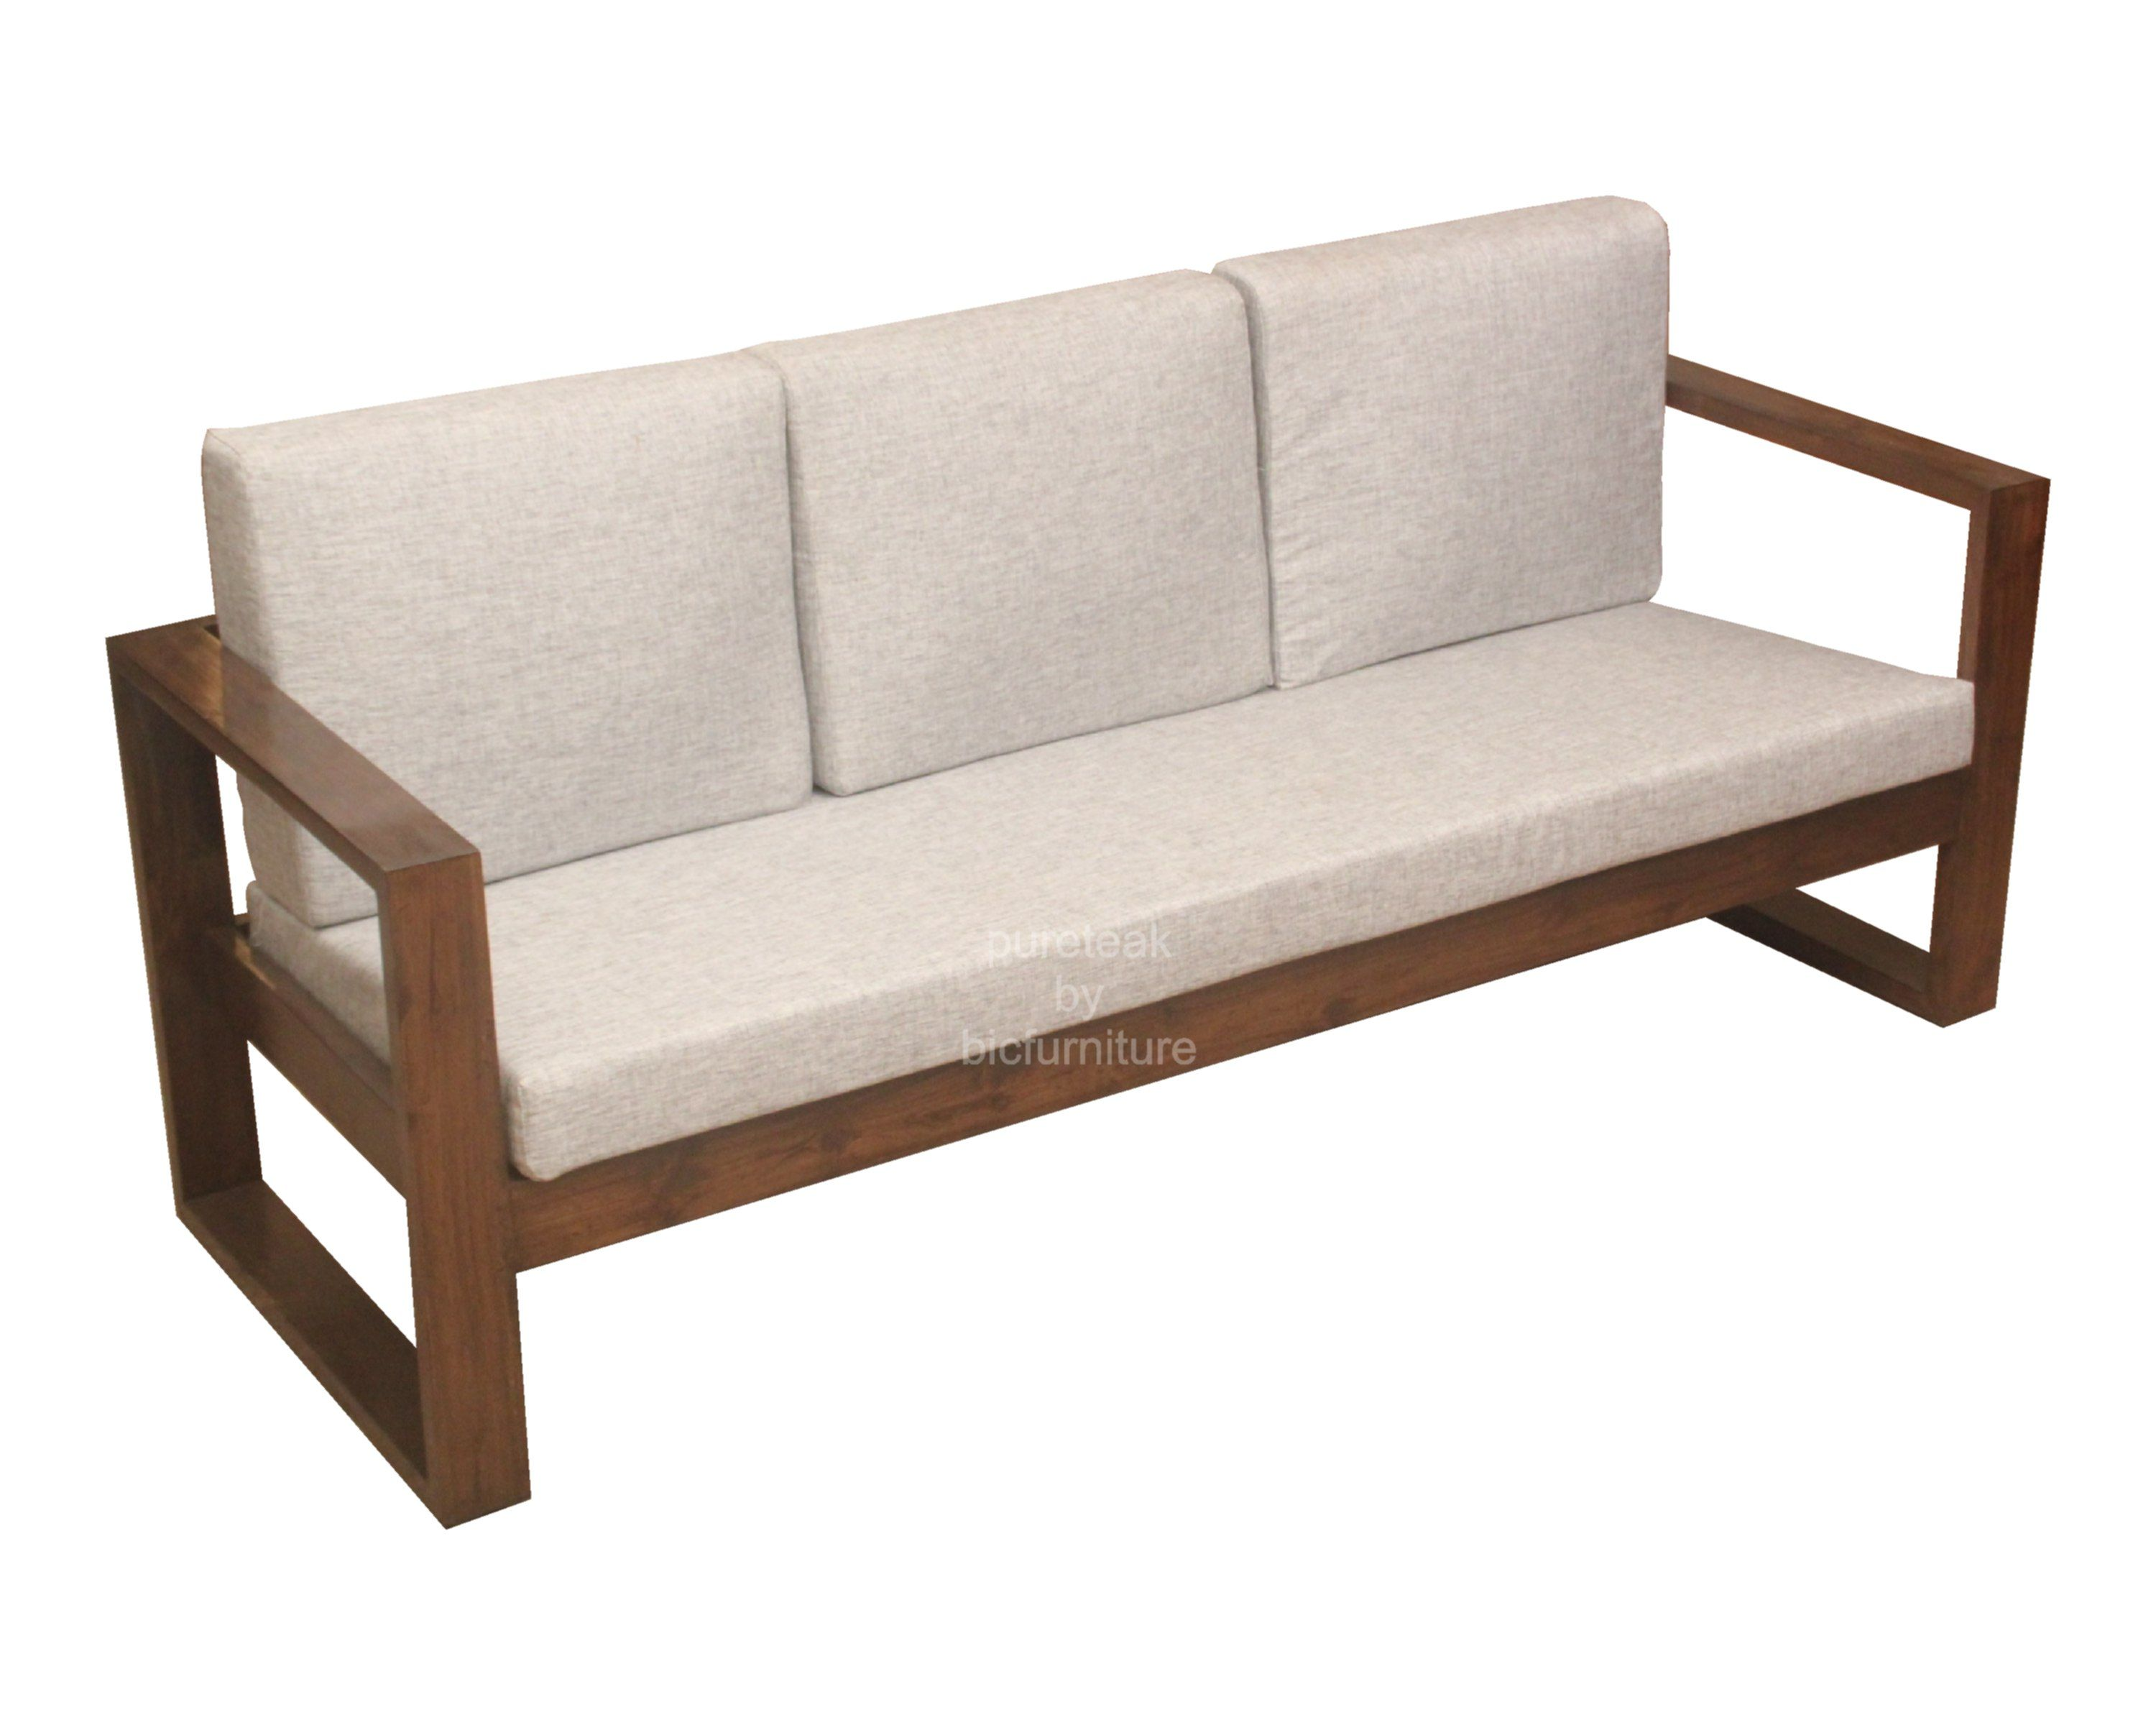 Wooden Sofa Set In Simple Design Ws 67 Details Bic Furniture India Furniture Sofa Set Wooden Sofa Set Furniture